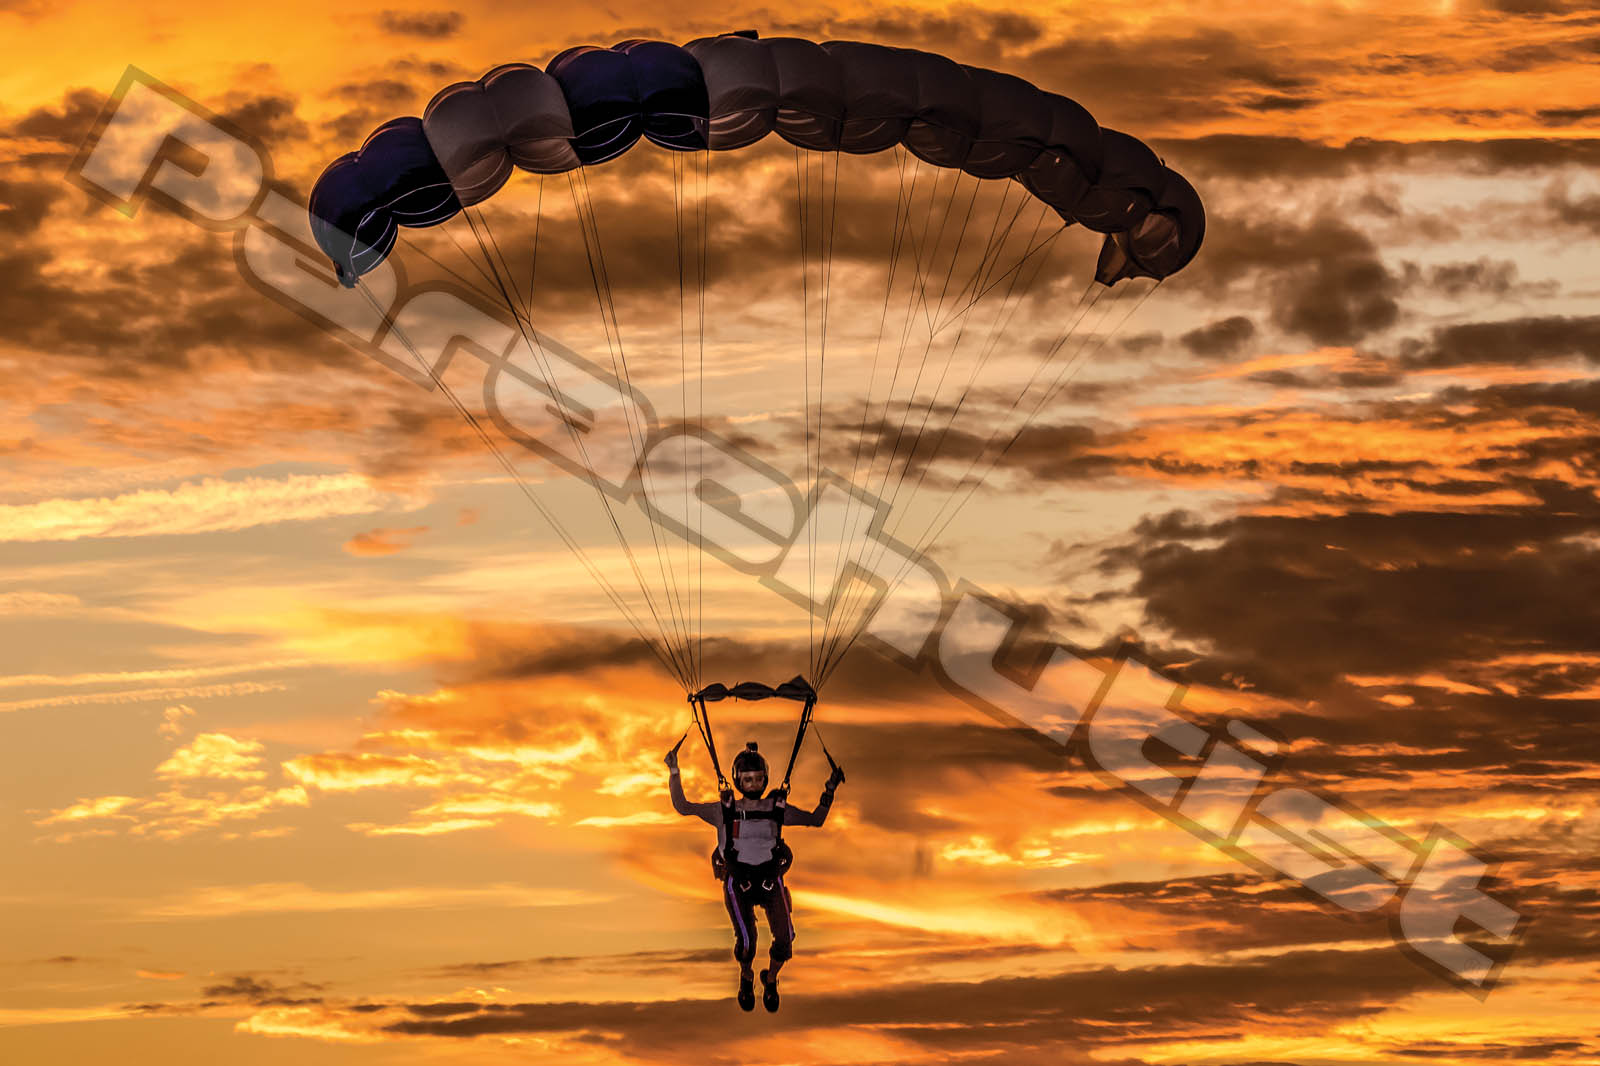 Diamond Anniversary: The 60th Annual USPA National Collegiate Parachuting Championships